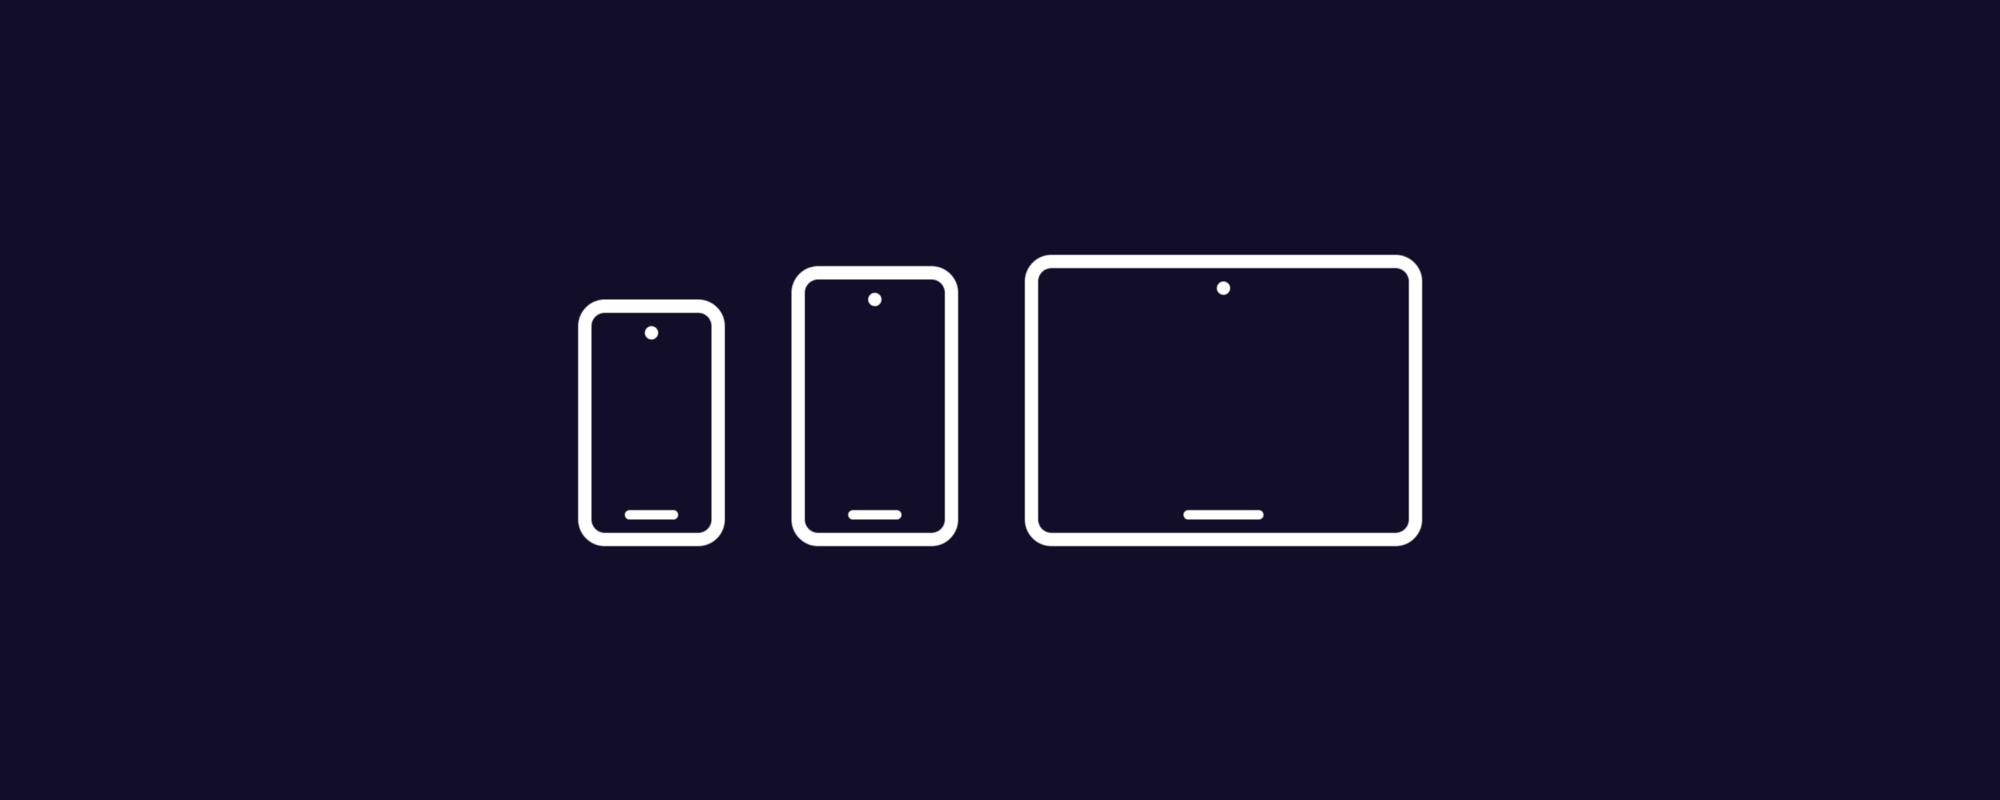 Cover image displaying mobile devices in varying sizes.